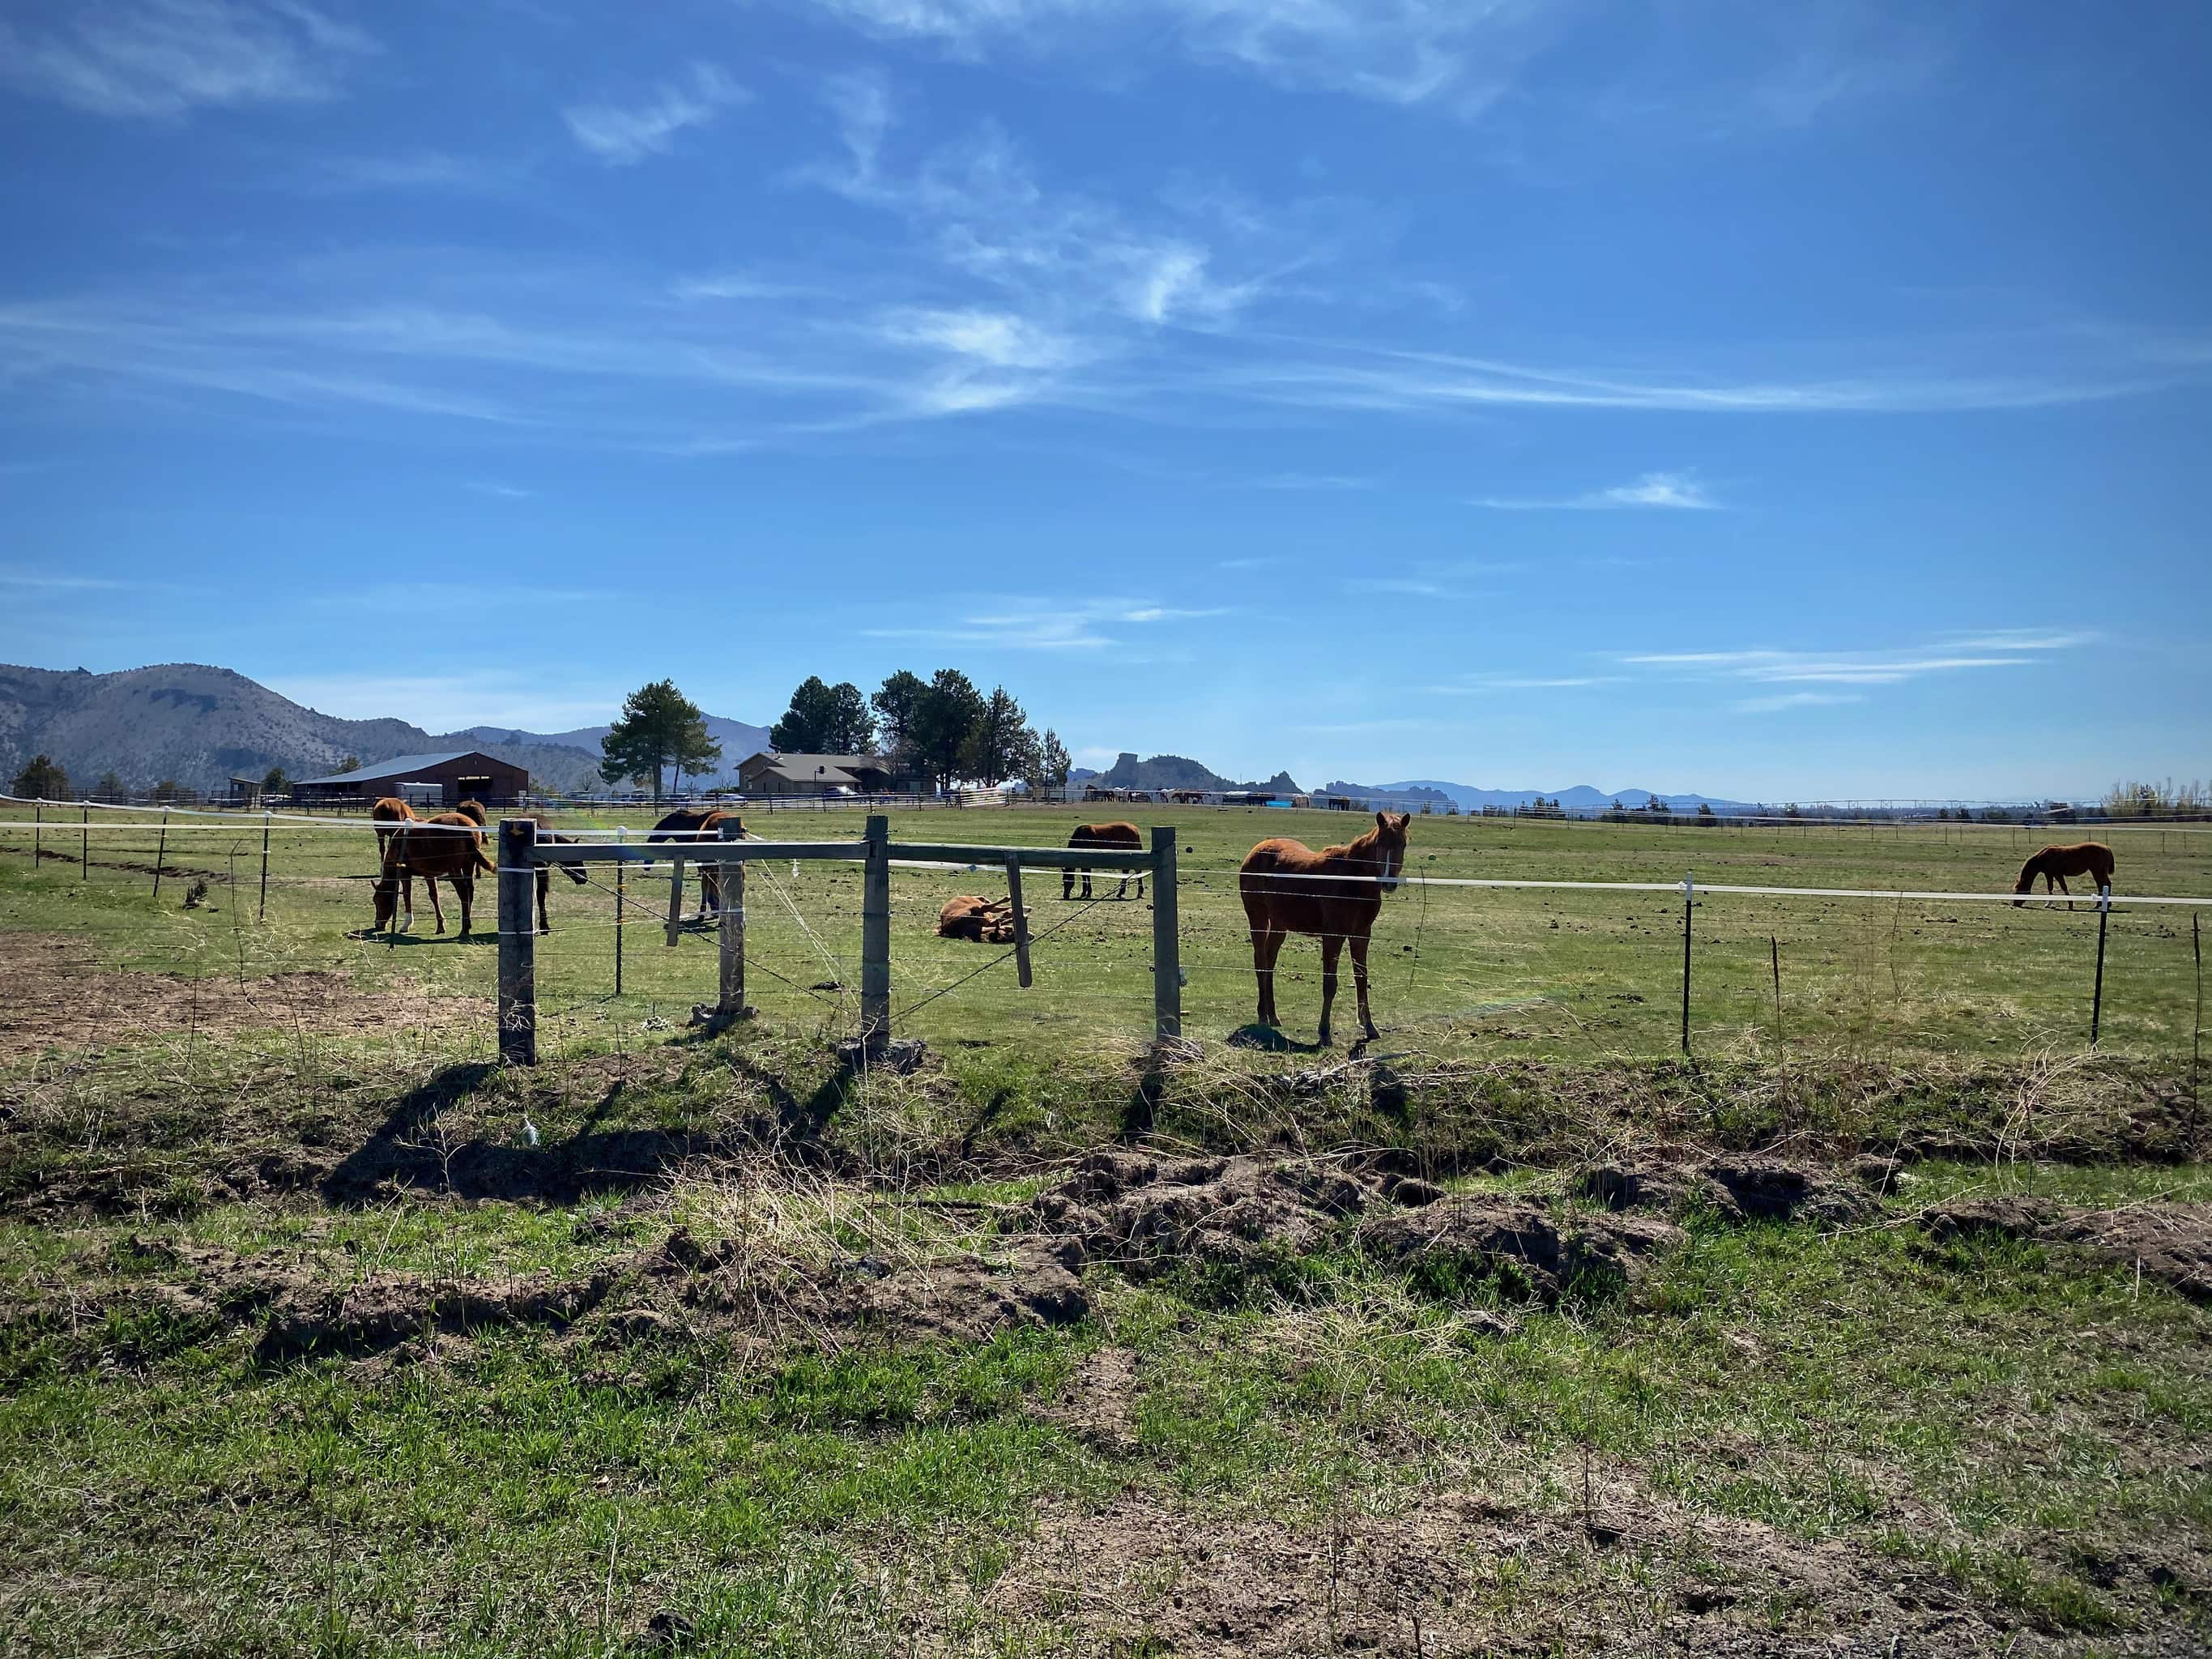 Horses along the the Culver highway between Madras and Terrebonne, Oregon.